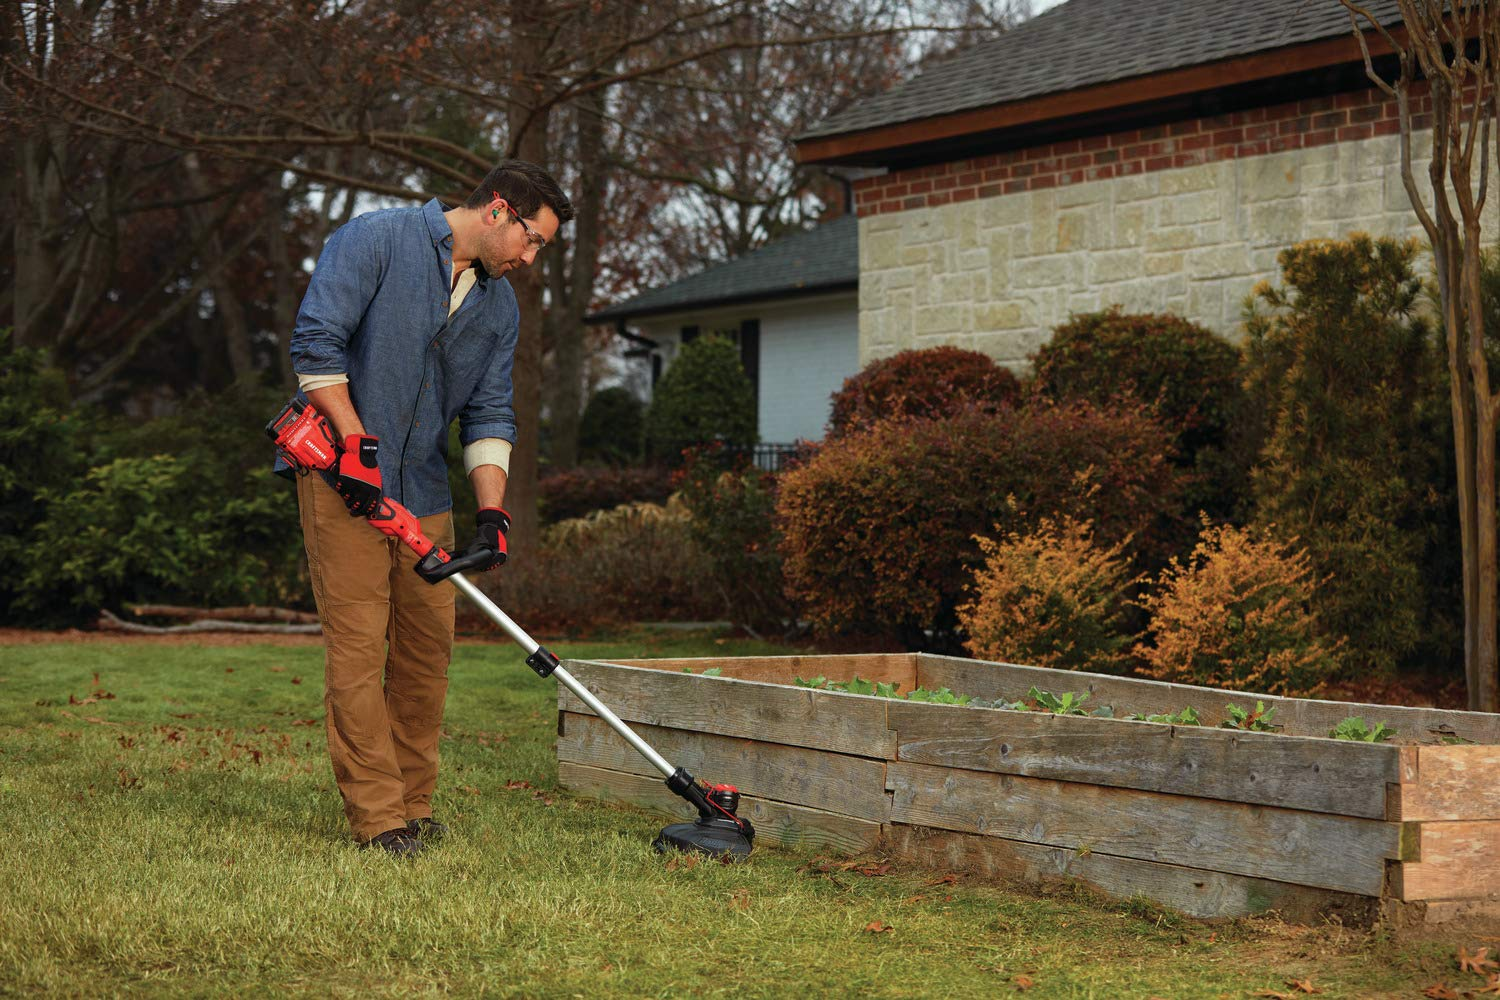 CRAFTSMAN V20 String Trimmer / Edger (CMCST910M1) Review